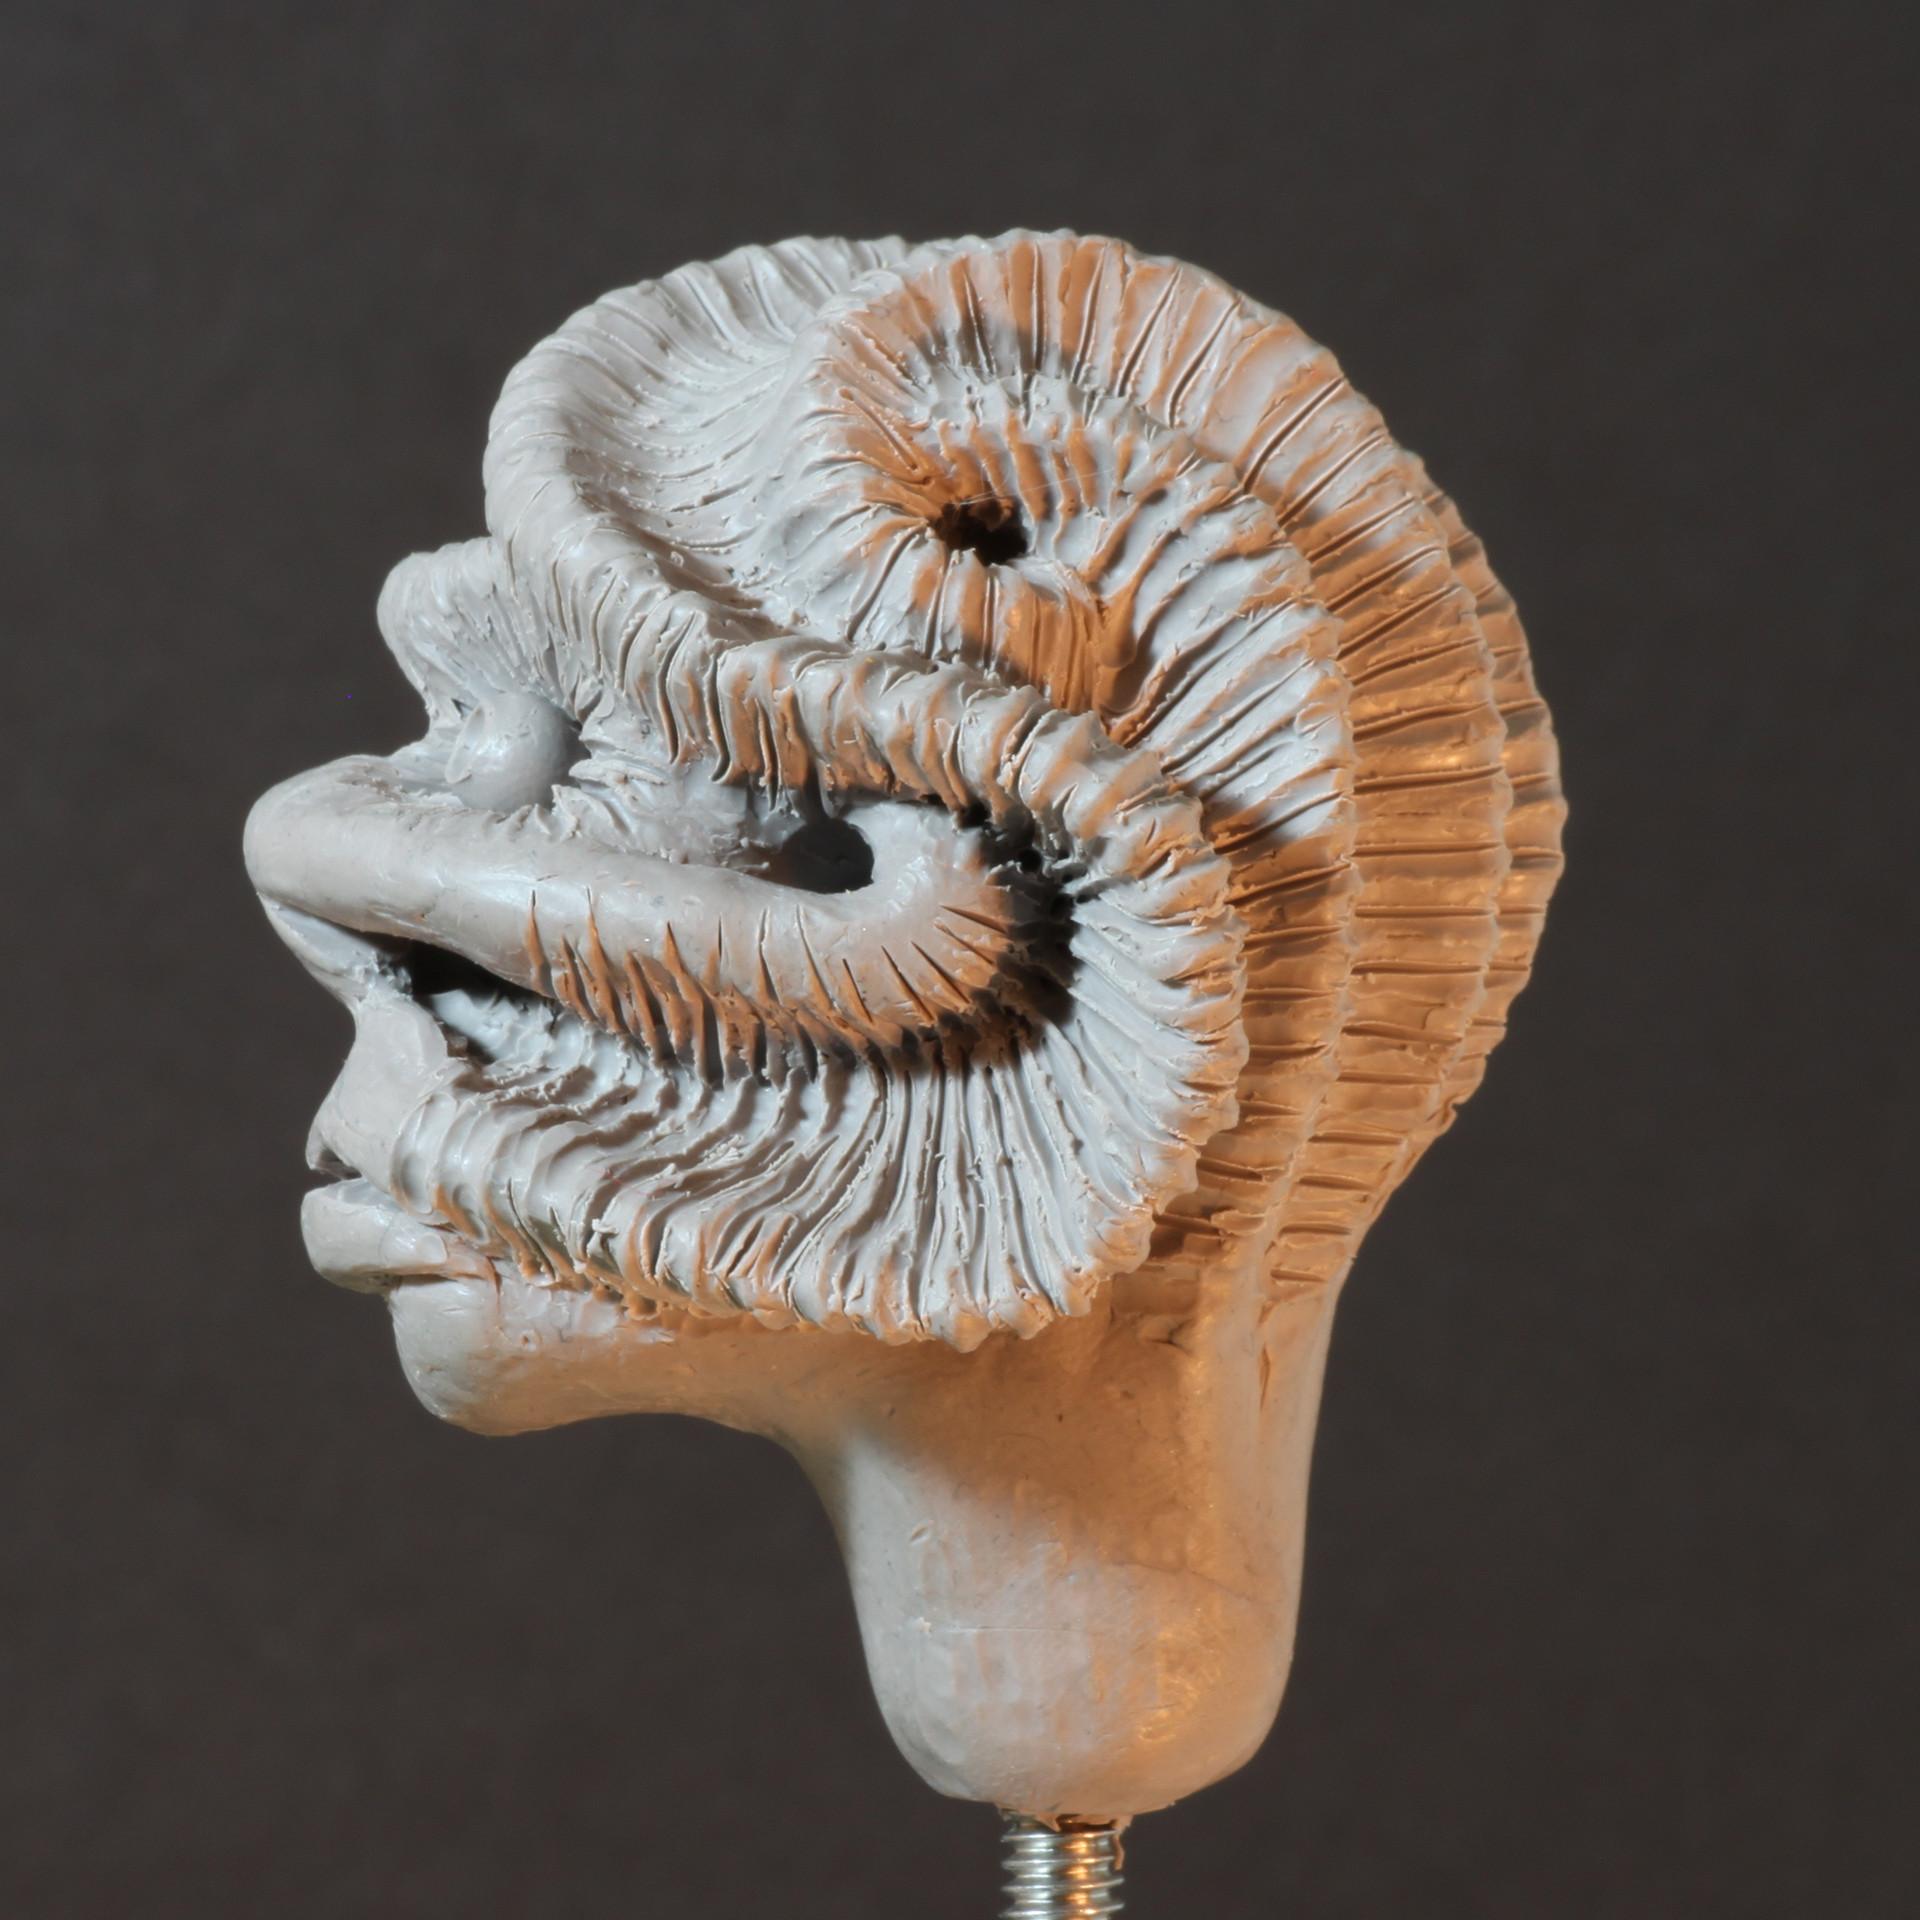 Rob mcdaniel 3dclay spiralshell side